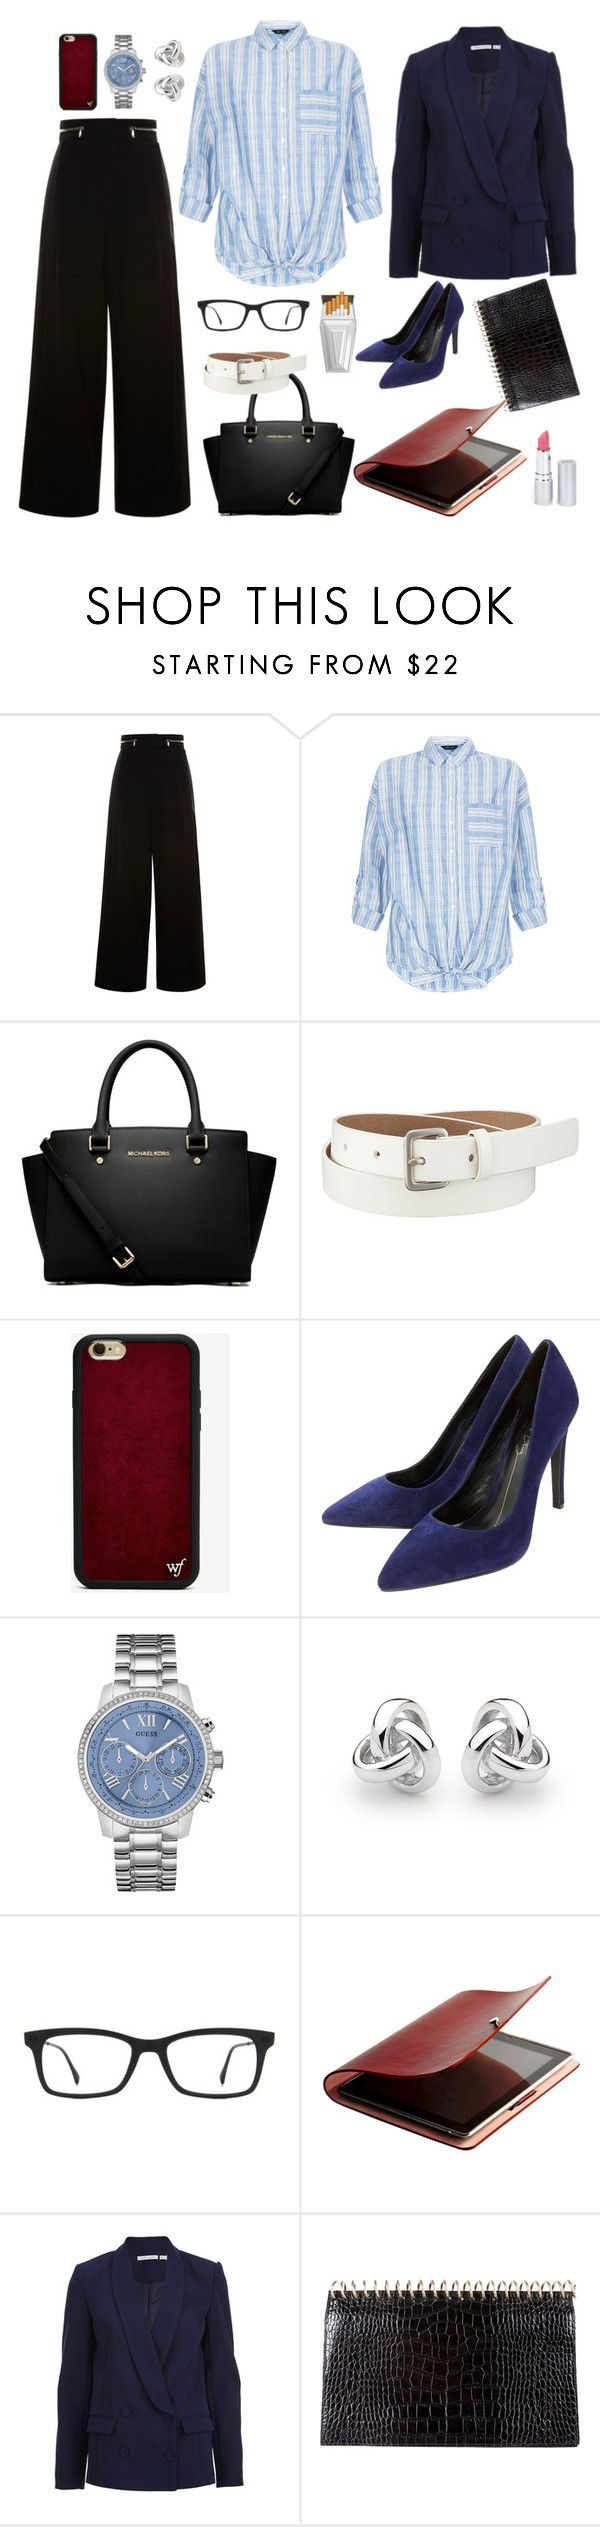 WW - Work Wear by dinyvia on Polyvore featuring Finders Keepers, Proenza Schouler, Lola Cruz, MICHAEL Michael Kors, Alexander Wang, GUESS, Georgini, Uniqlo, Wildflower and Ray-Ban